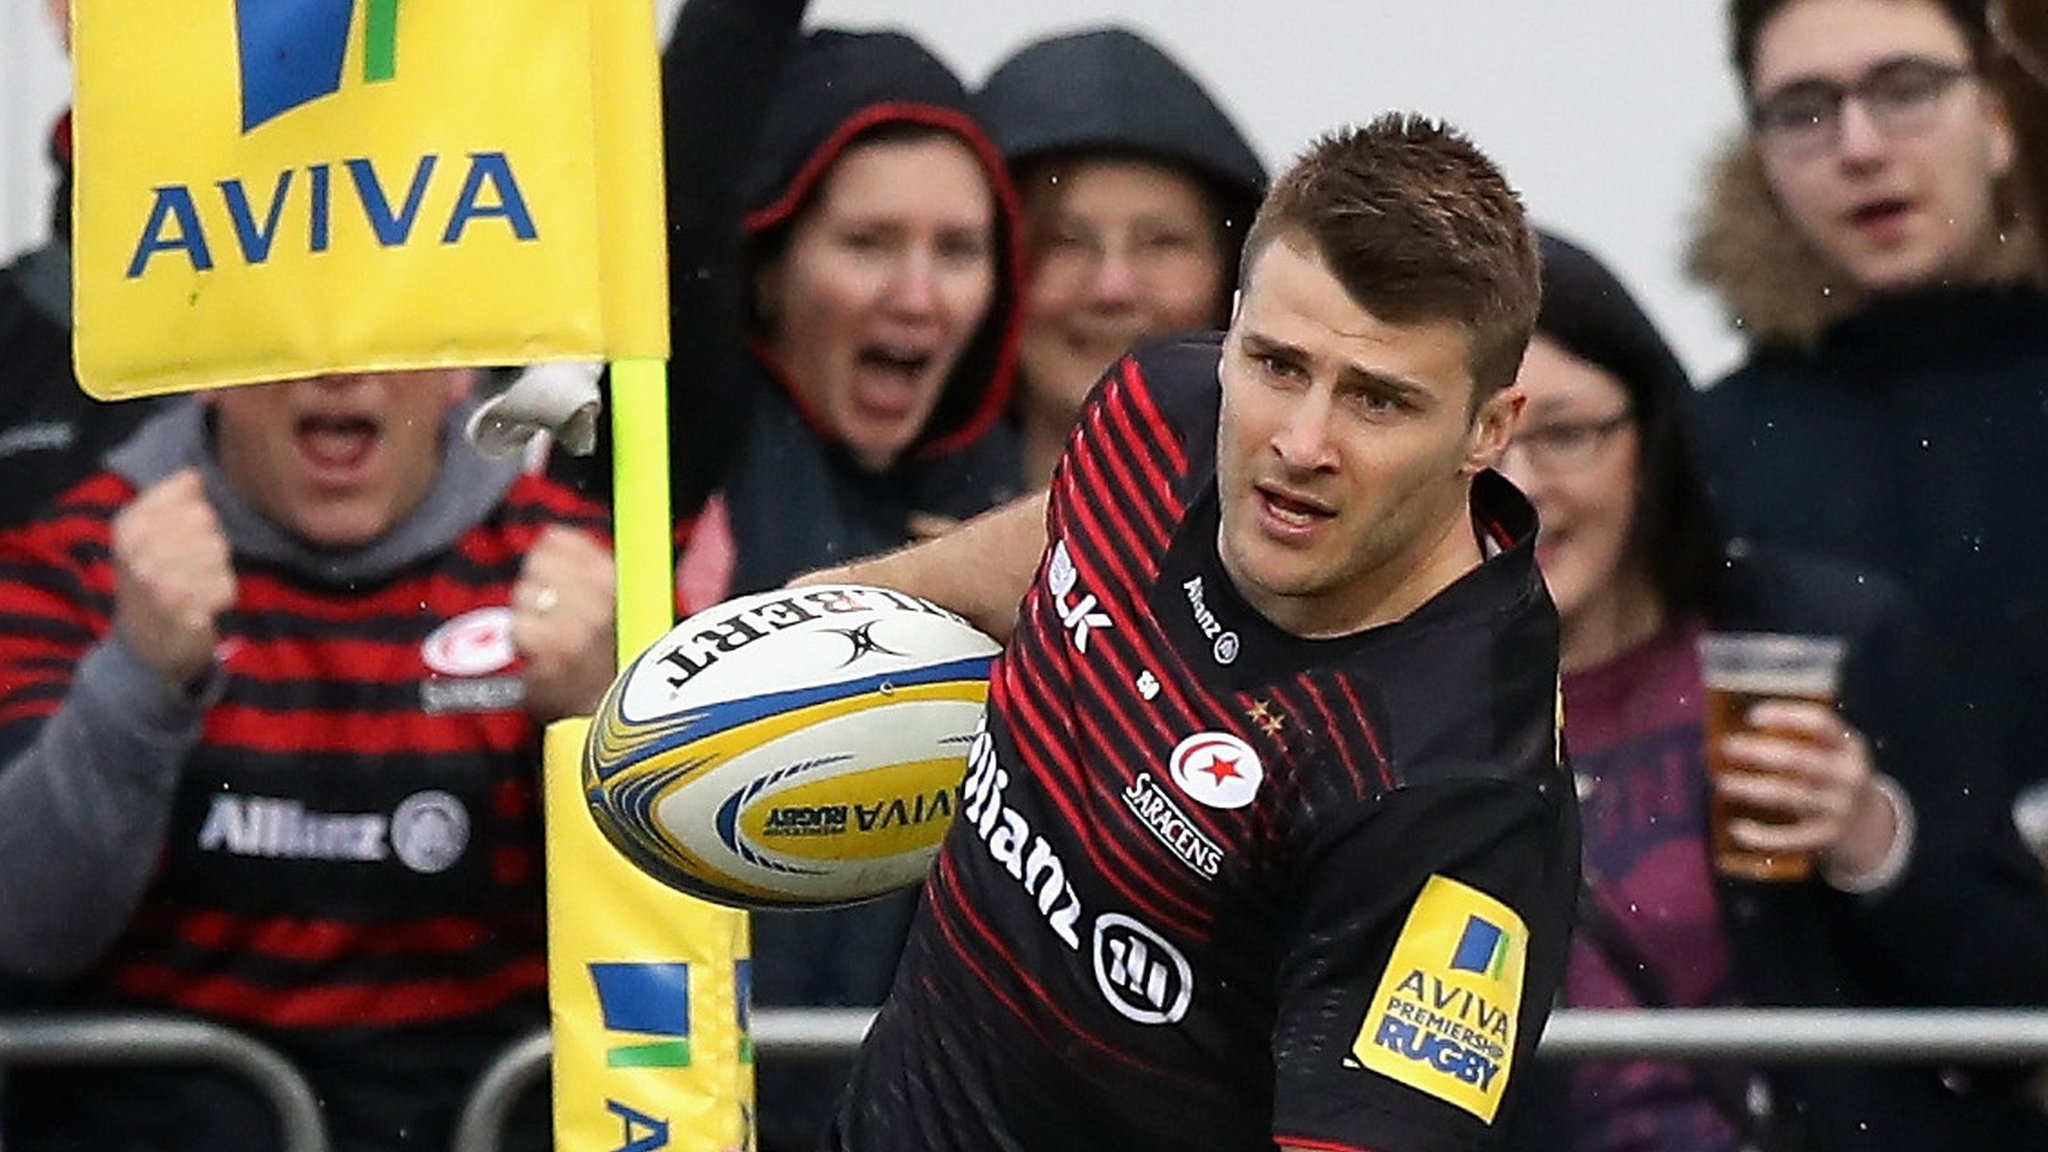 Richard Wigglesworth plays down chance of Premiership record with Saracens